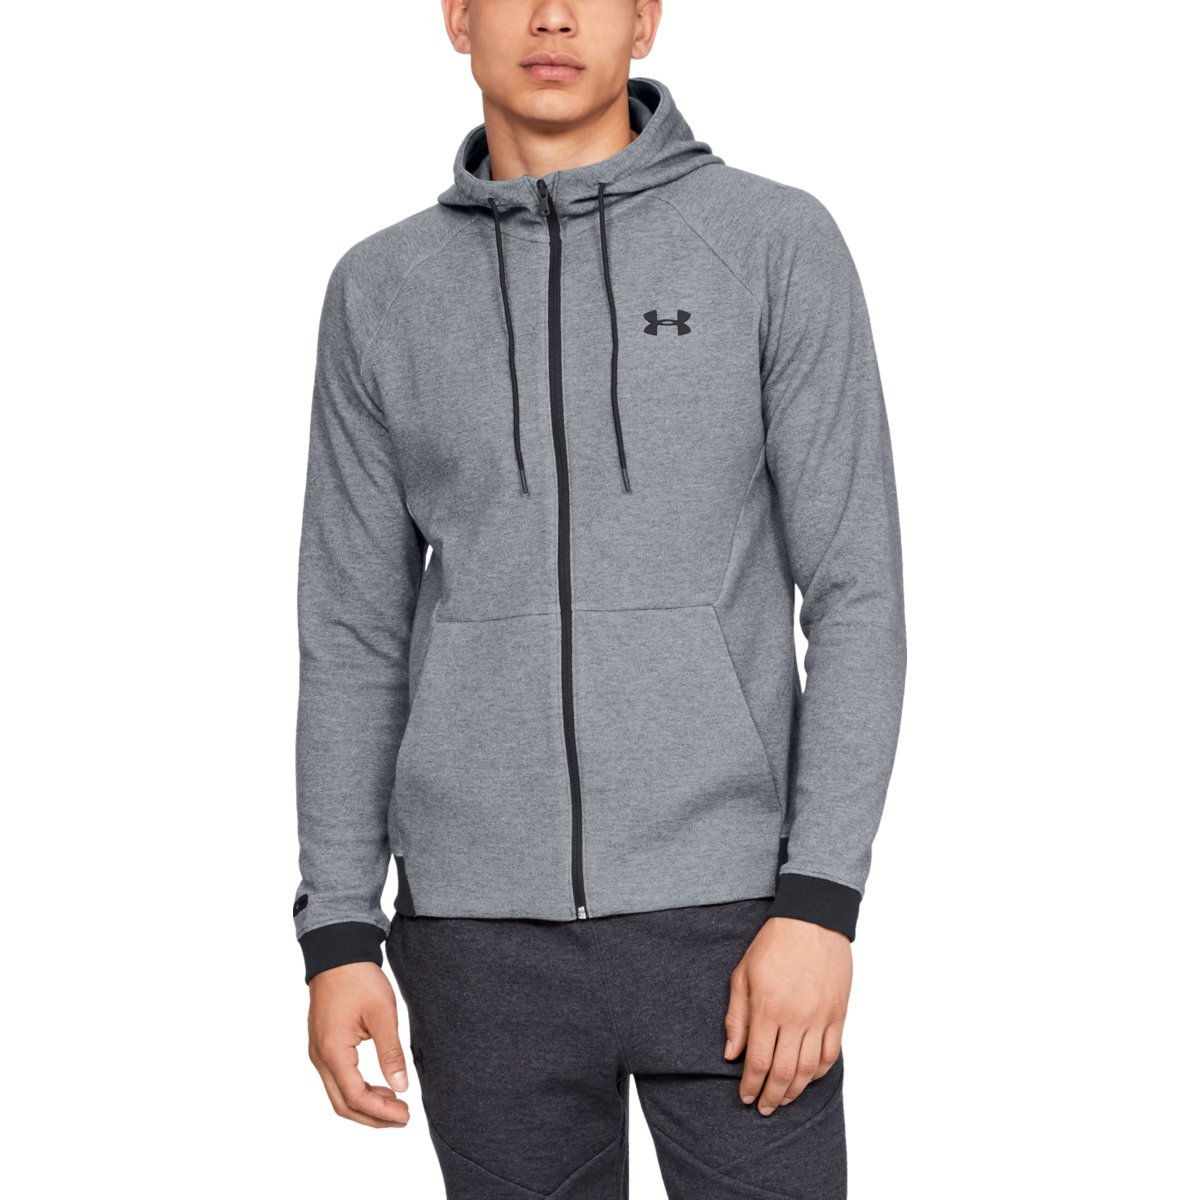 Mikina Unstoppable 2X Knit Fz Grey - Under Armour - S